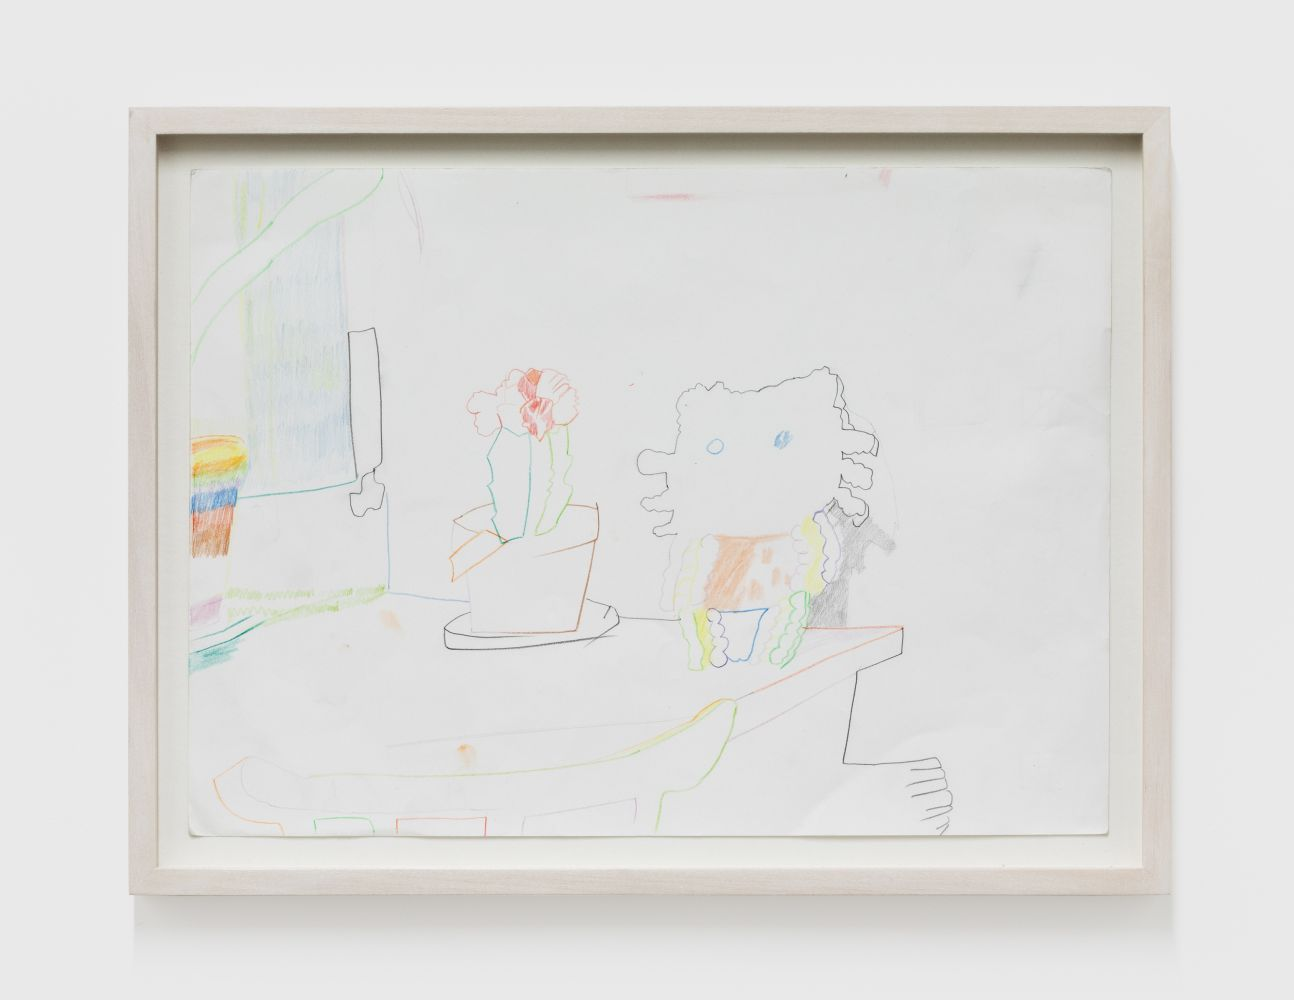 Gerlind Zeilner Hello K, 2019 Ink and colored pencil on paper 9 1/2 x 13 in 24 x 33 cm (GZE20.014)